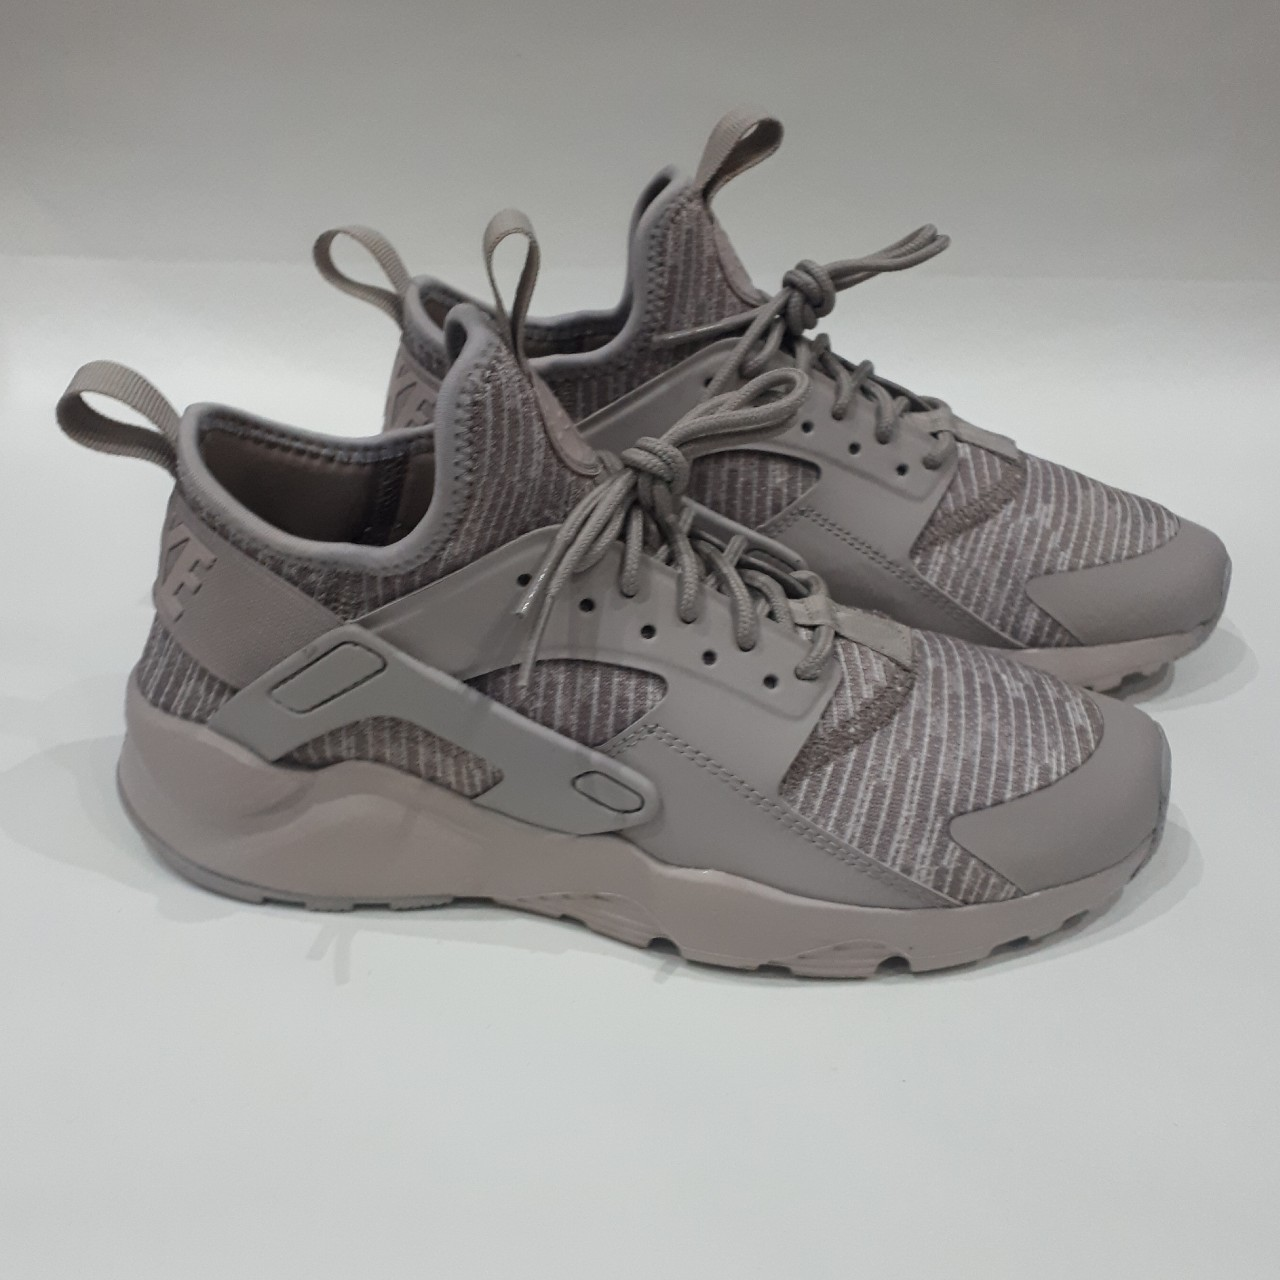 nike Air Huarache Run Ultra MOON PARTICLE US MENS SHOE SIZES 875841-200